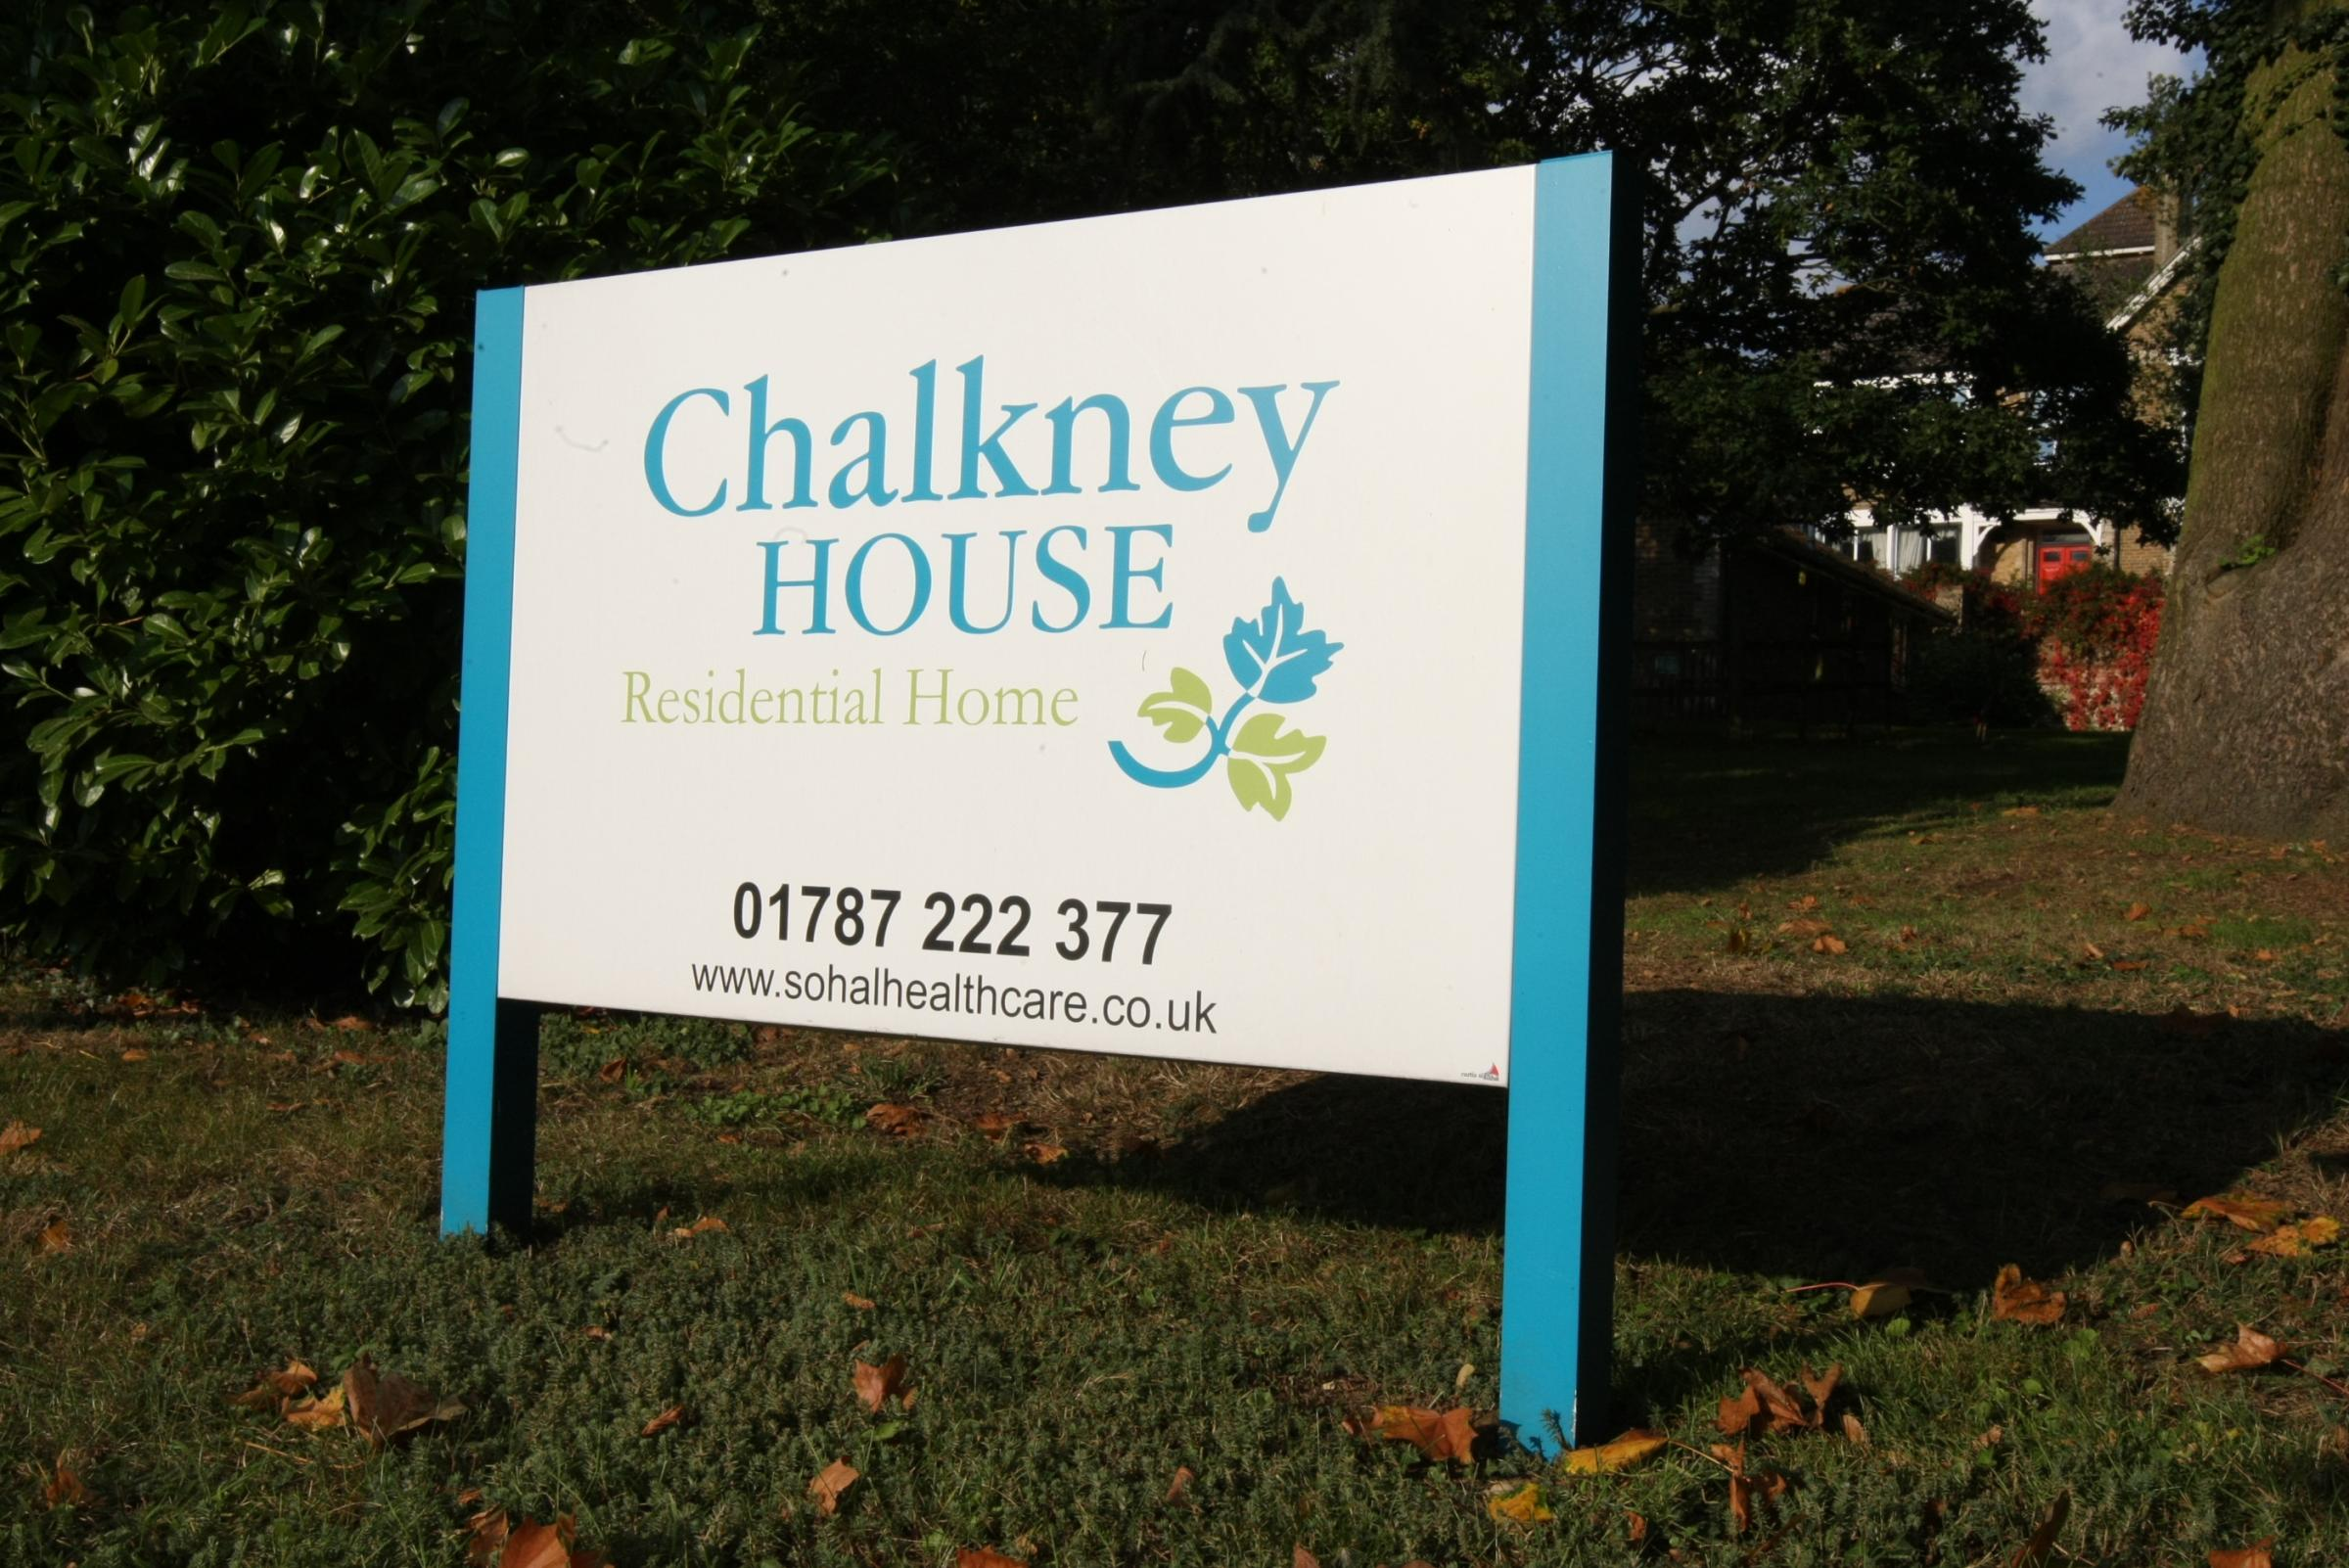 Chalkney House care home in White Colne